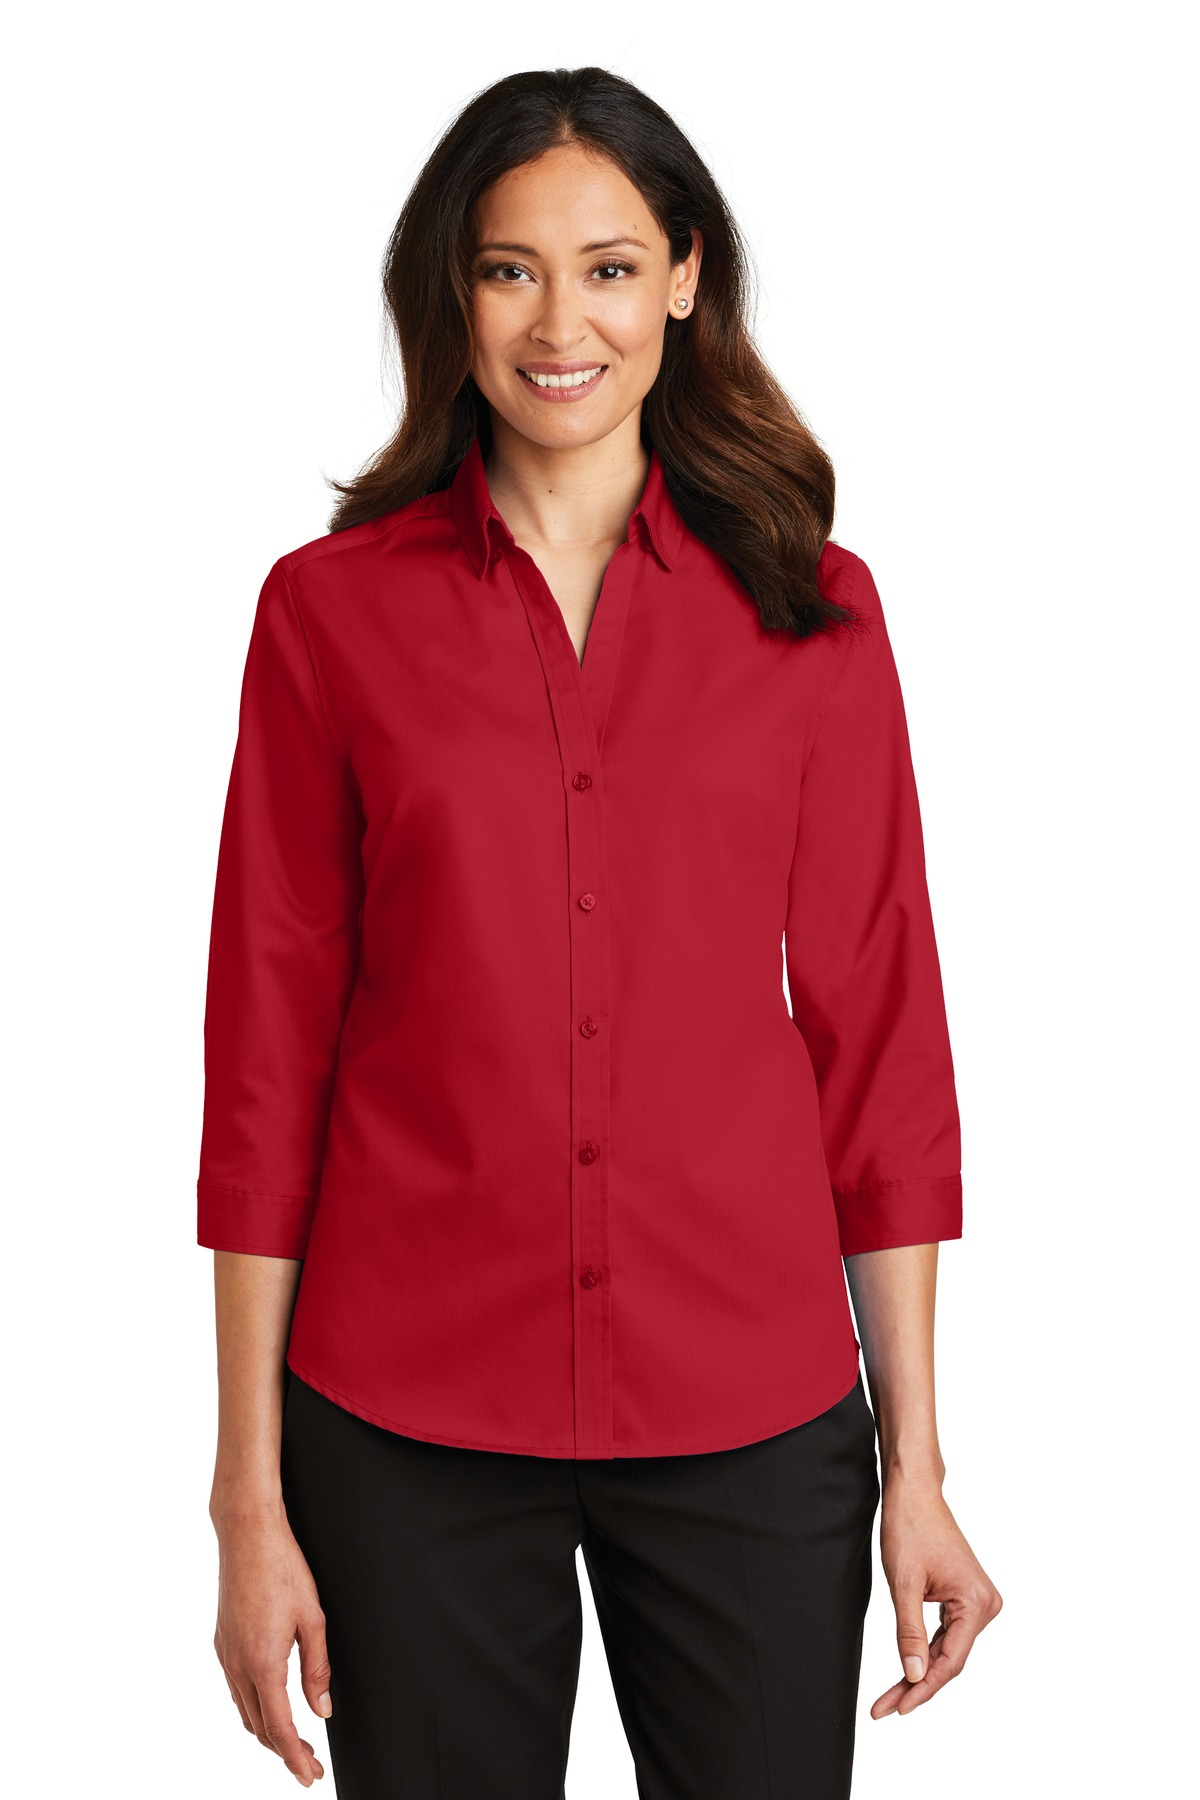 Port Authority ®  Ladies 3/4-Sleeve SuperPro ™  Twill Shirt. L665 - Rich Red